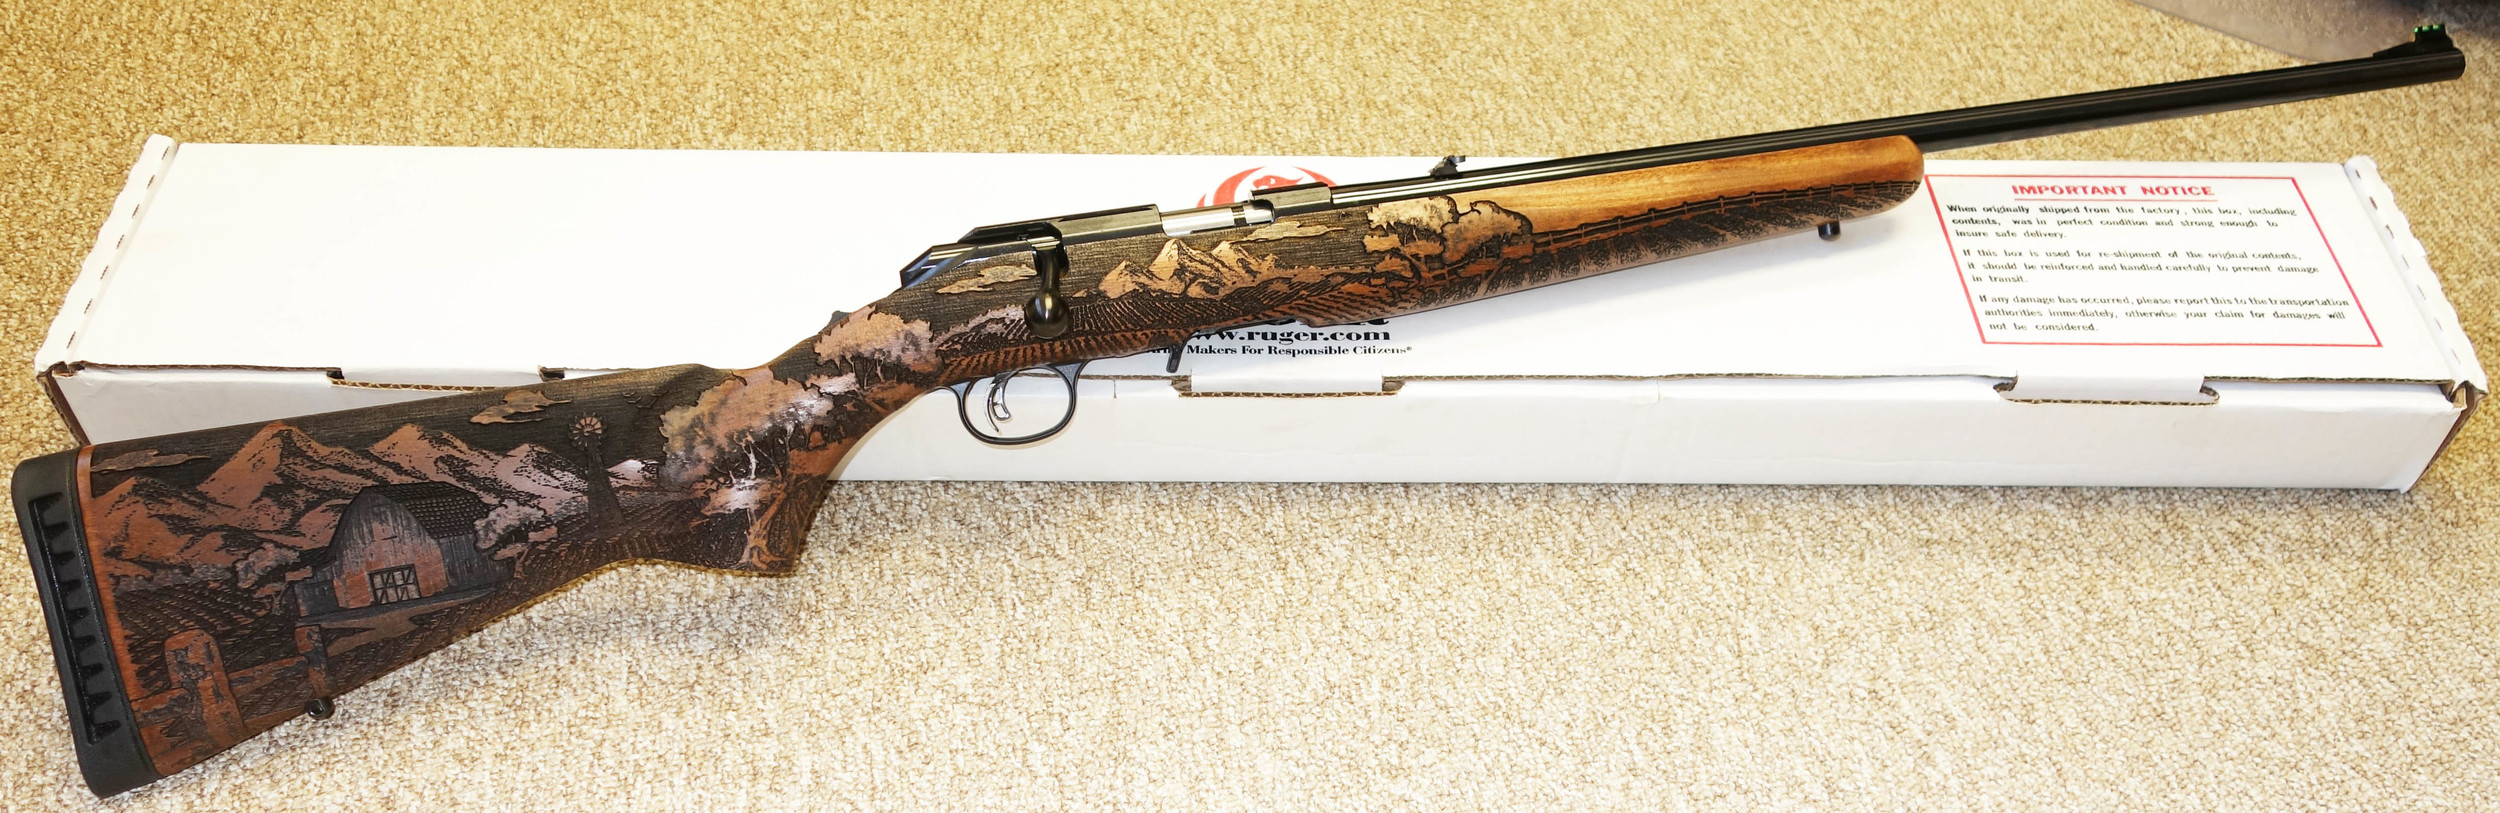 No a great photo but we will do a limited edition American Farmer and a Cattle Drive in a Ruger American Bolt action .22. details to follow.